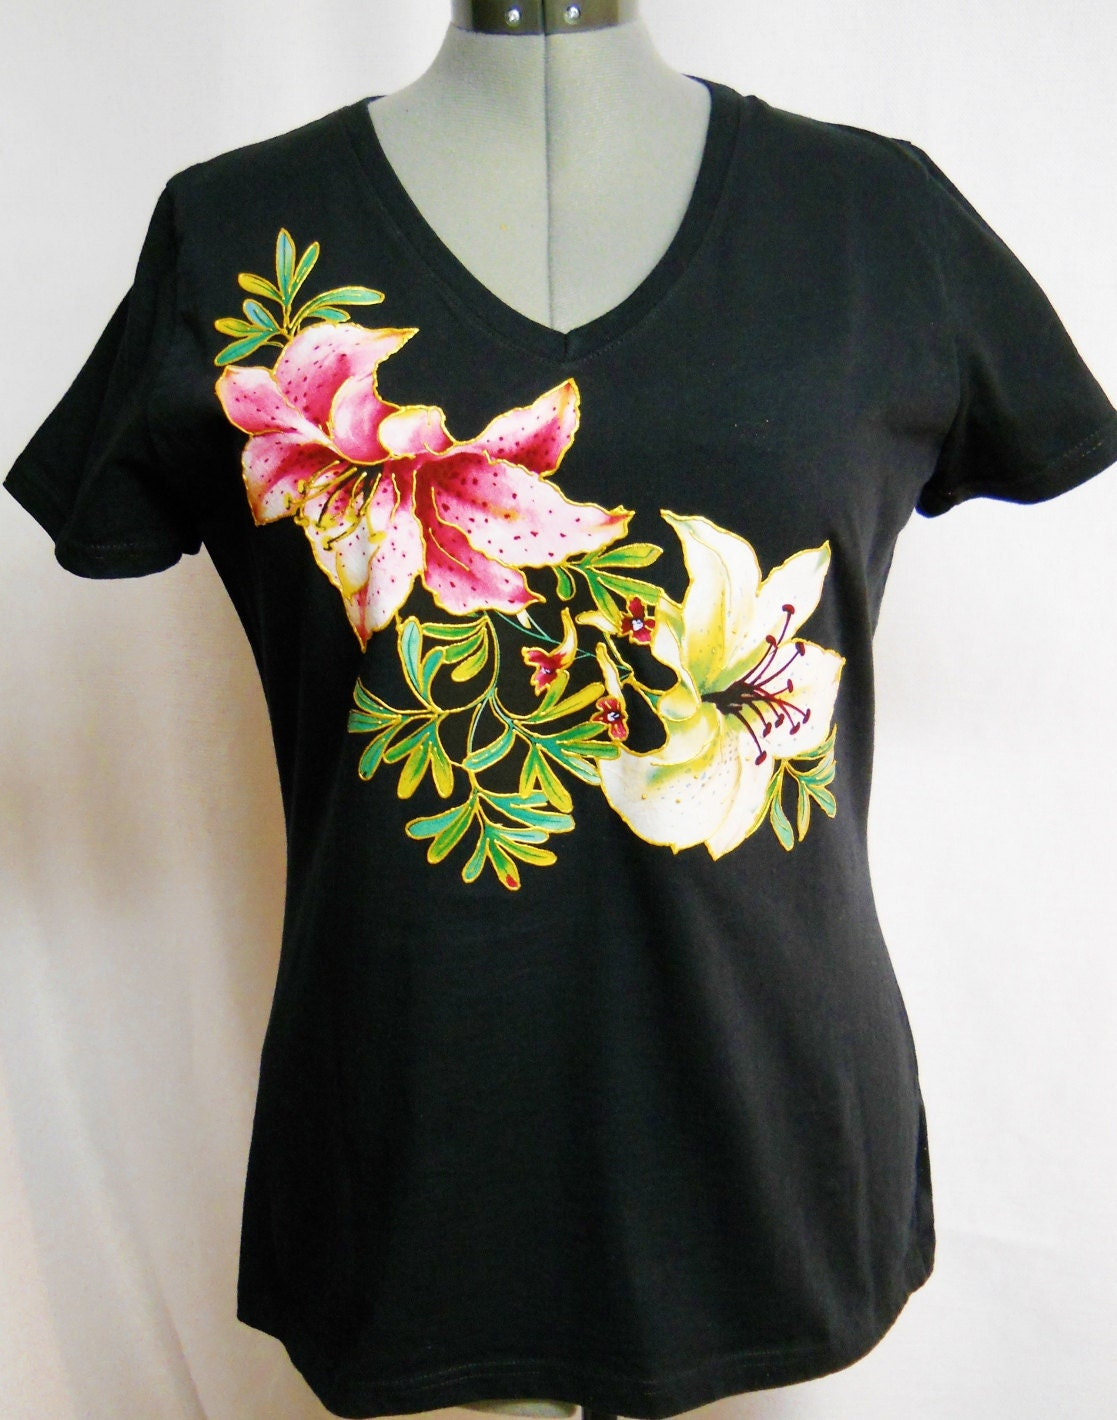 Women 39 s spring black tee shirt custom floral hand painted for How to paint on t shirt